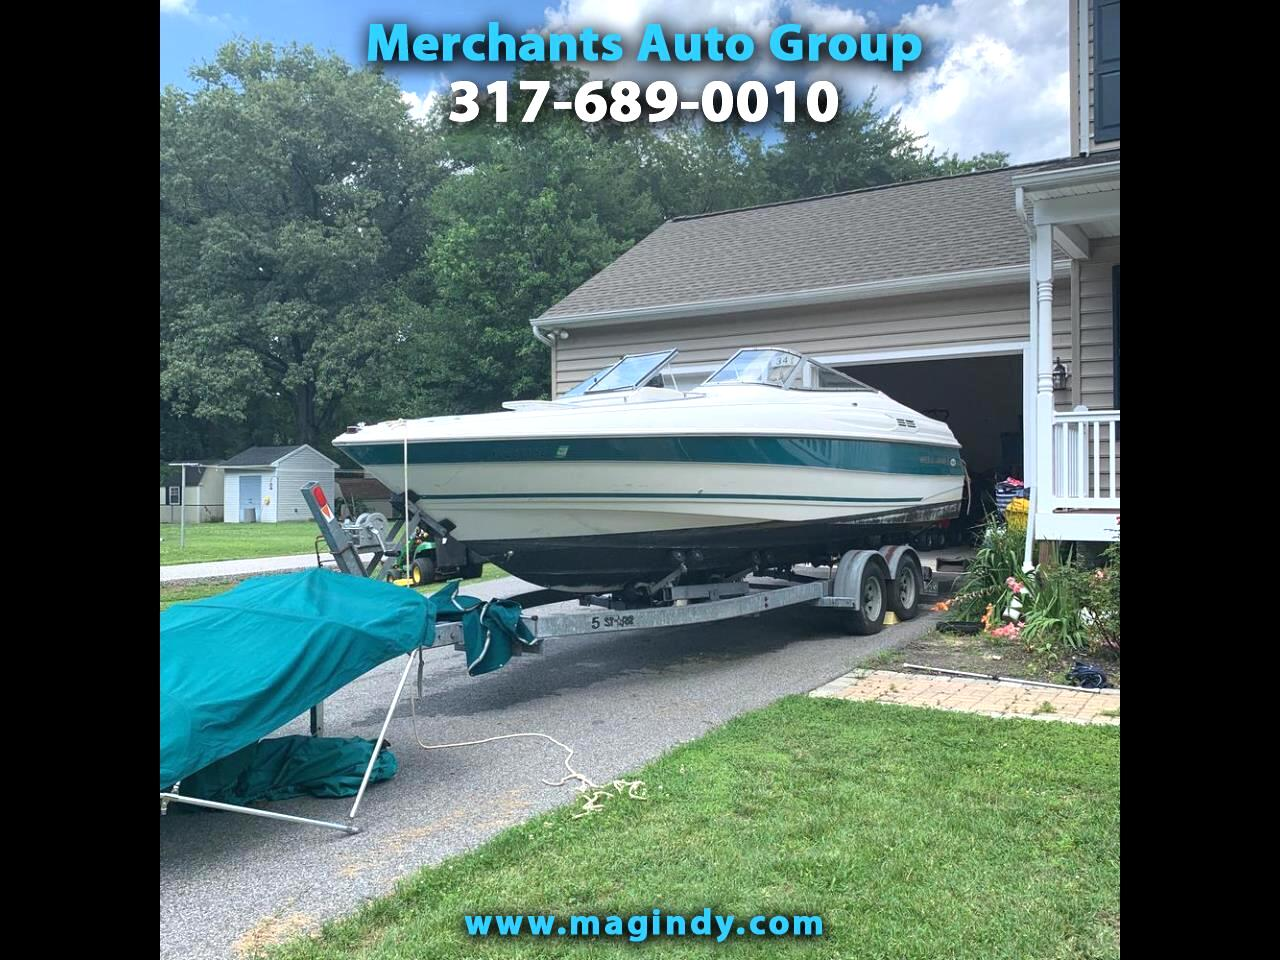 1998 Wellcraft Eclipse 26 S